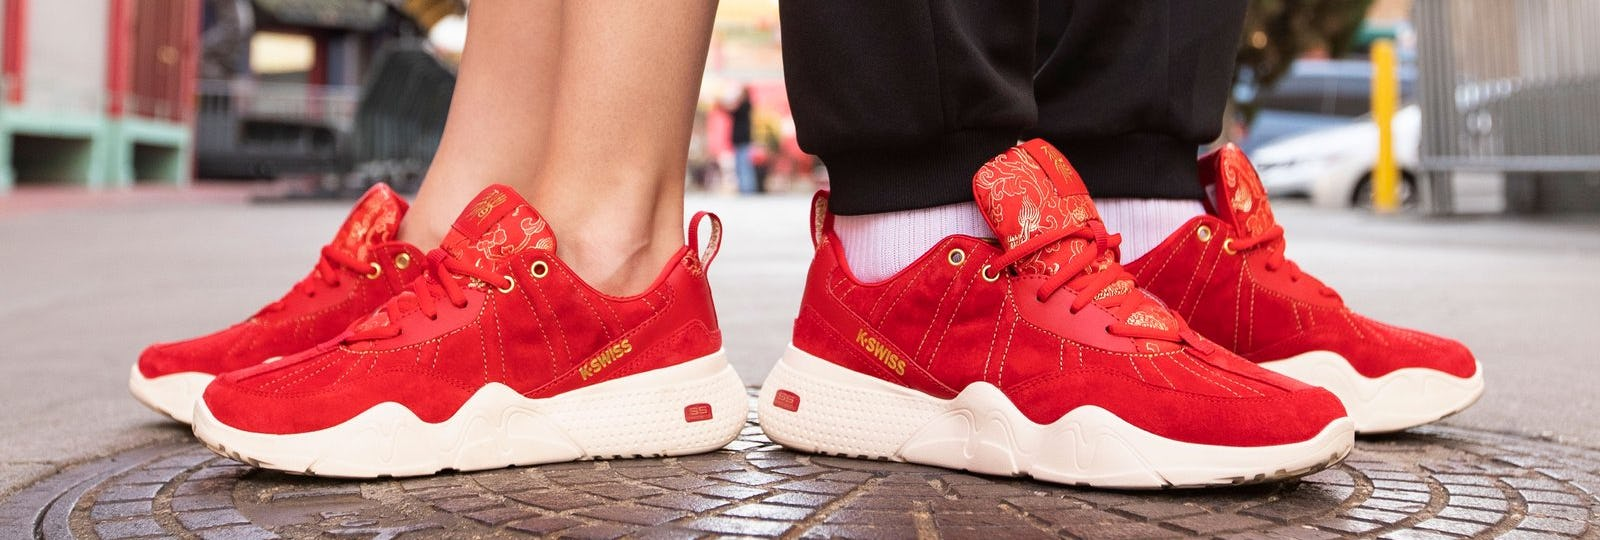 Chinese New Year shoes by K-Swiss